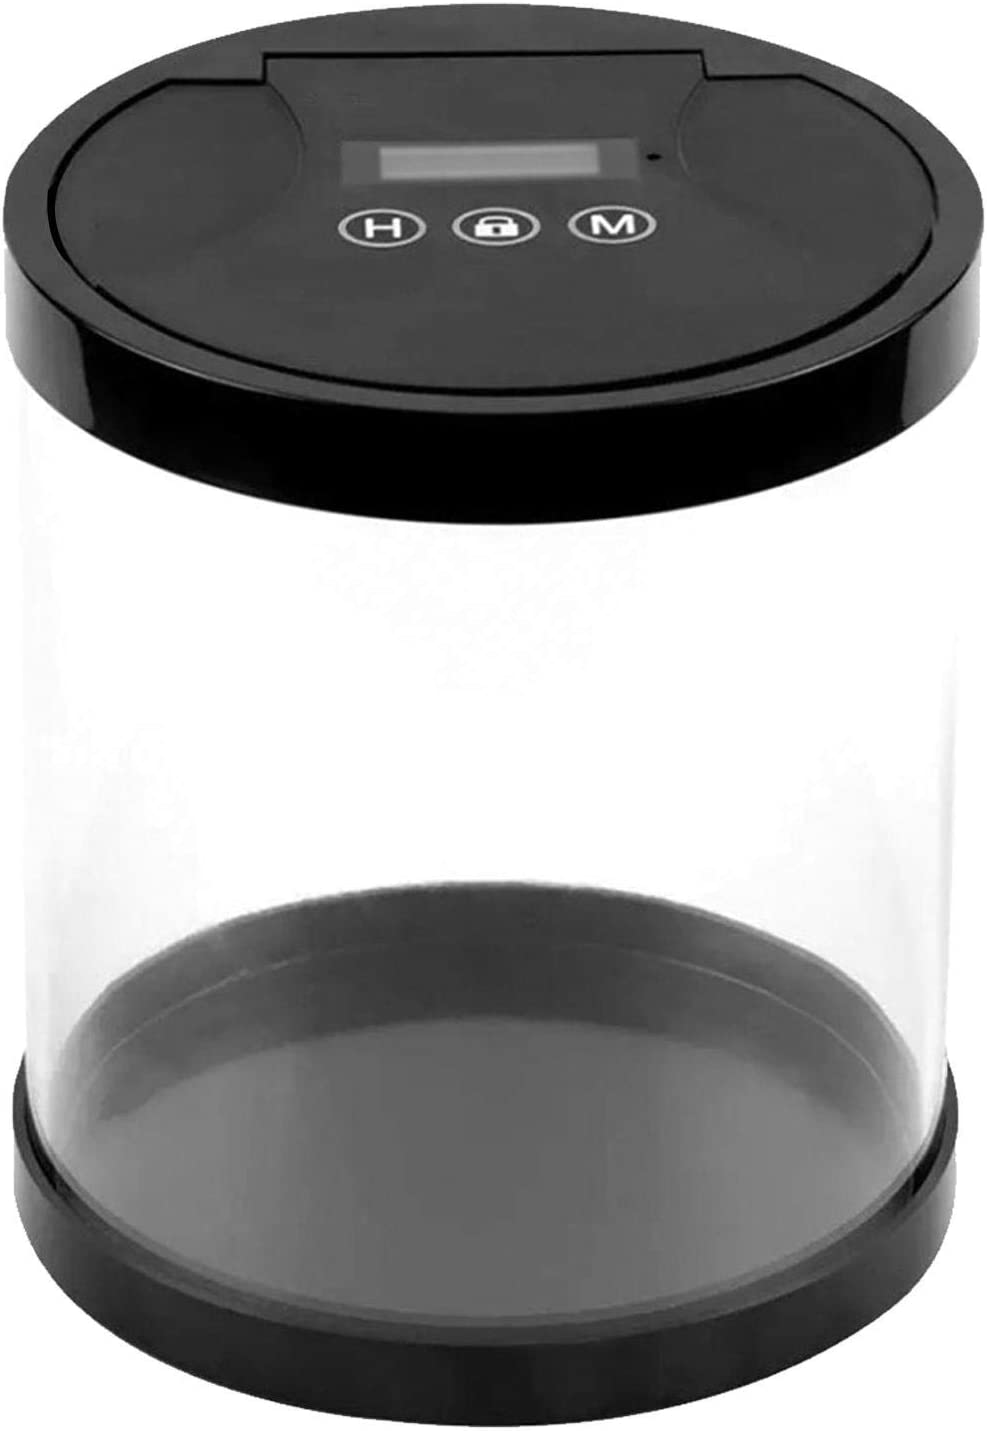 Timer Lock Container, Time Lock Box Bin,Multi Function Timed Lock Box Kitchen Storage and Piggy Bank,Ideal for Quitting Smoking, Excessive Playing of Smartphones and Games